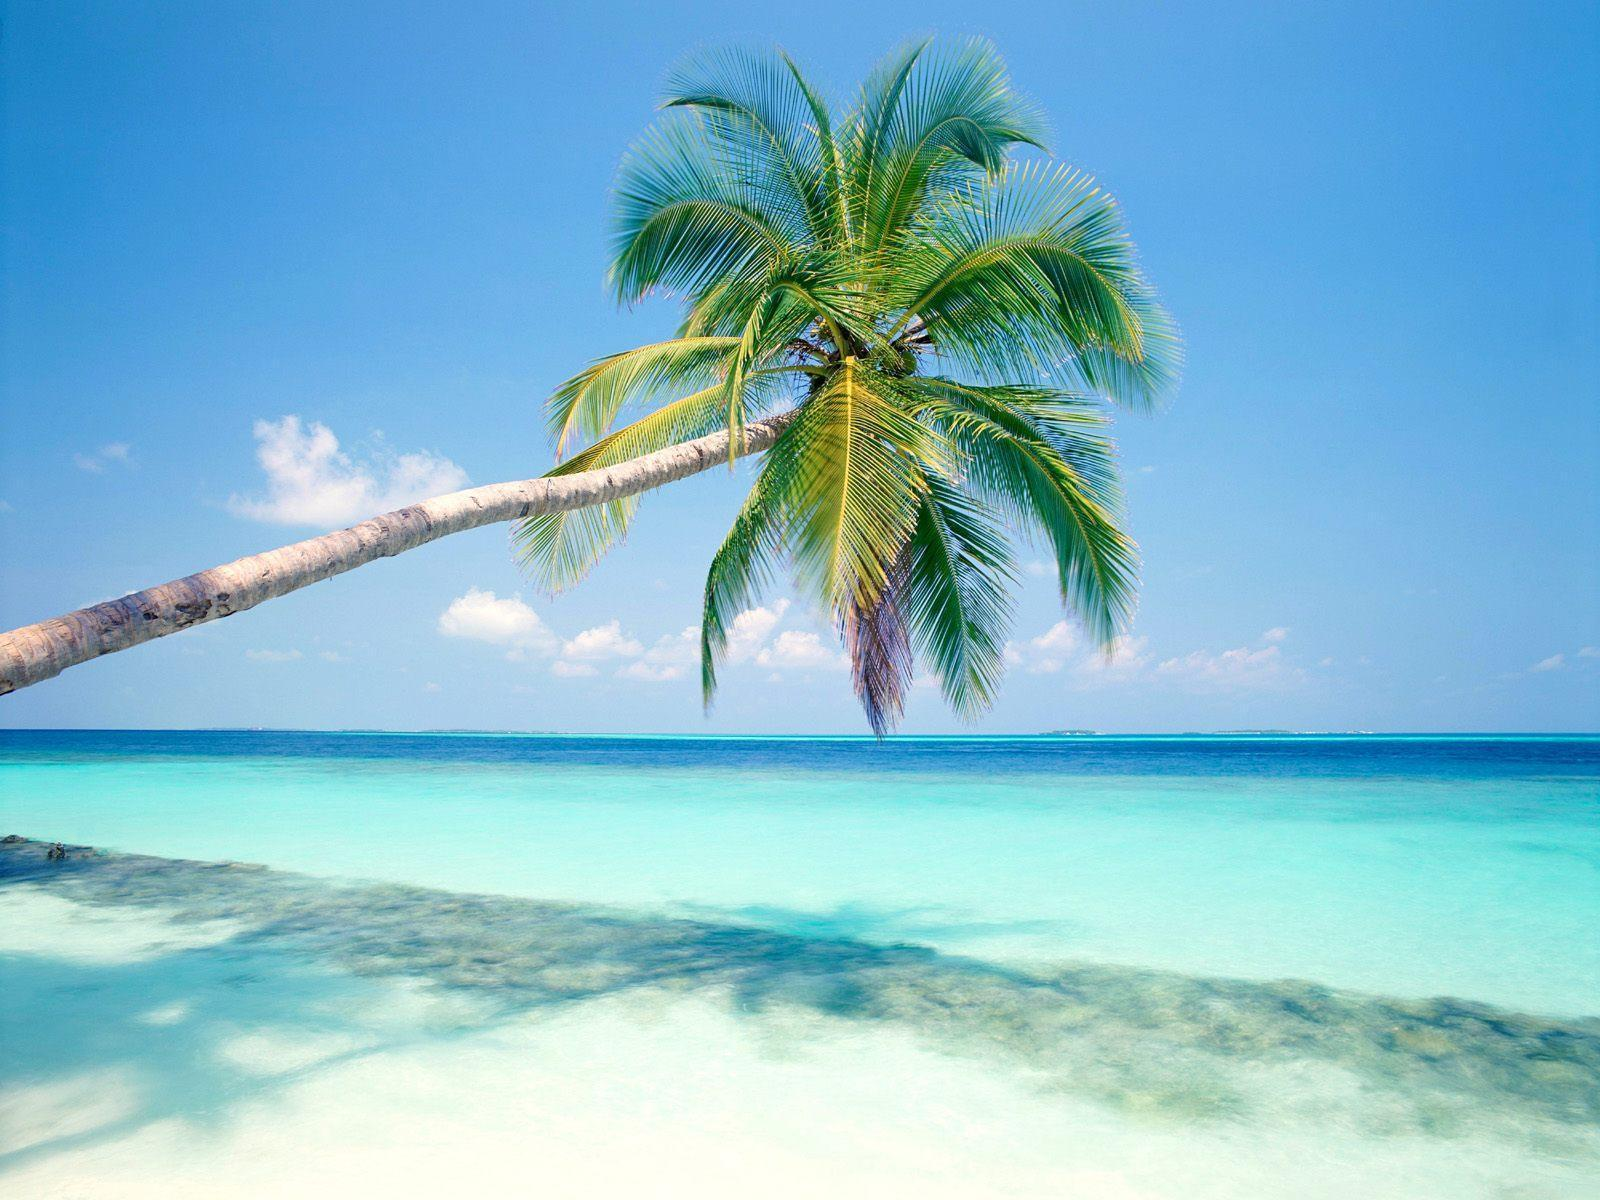 tropical resorts wallpaper background - photo #46